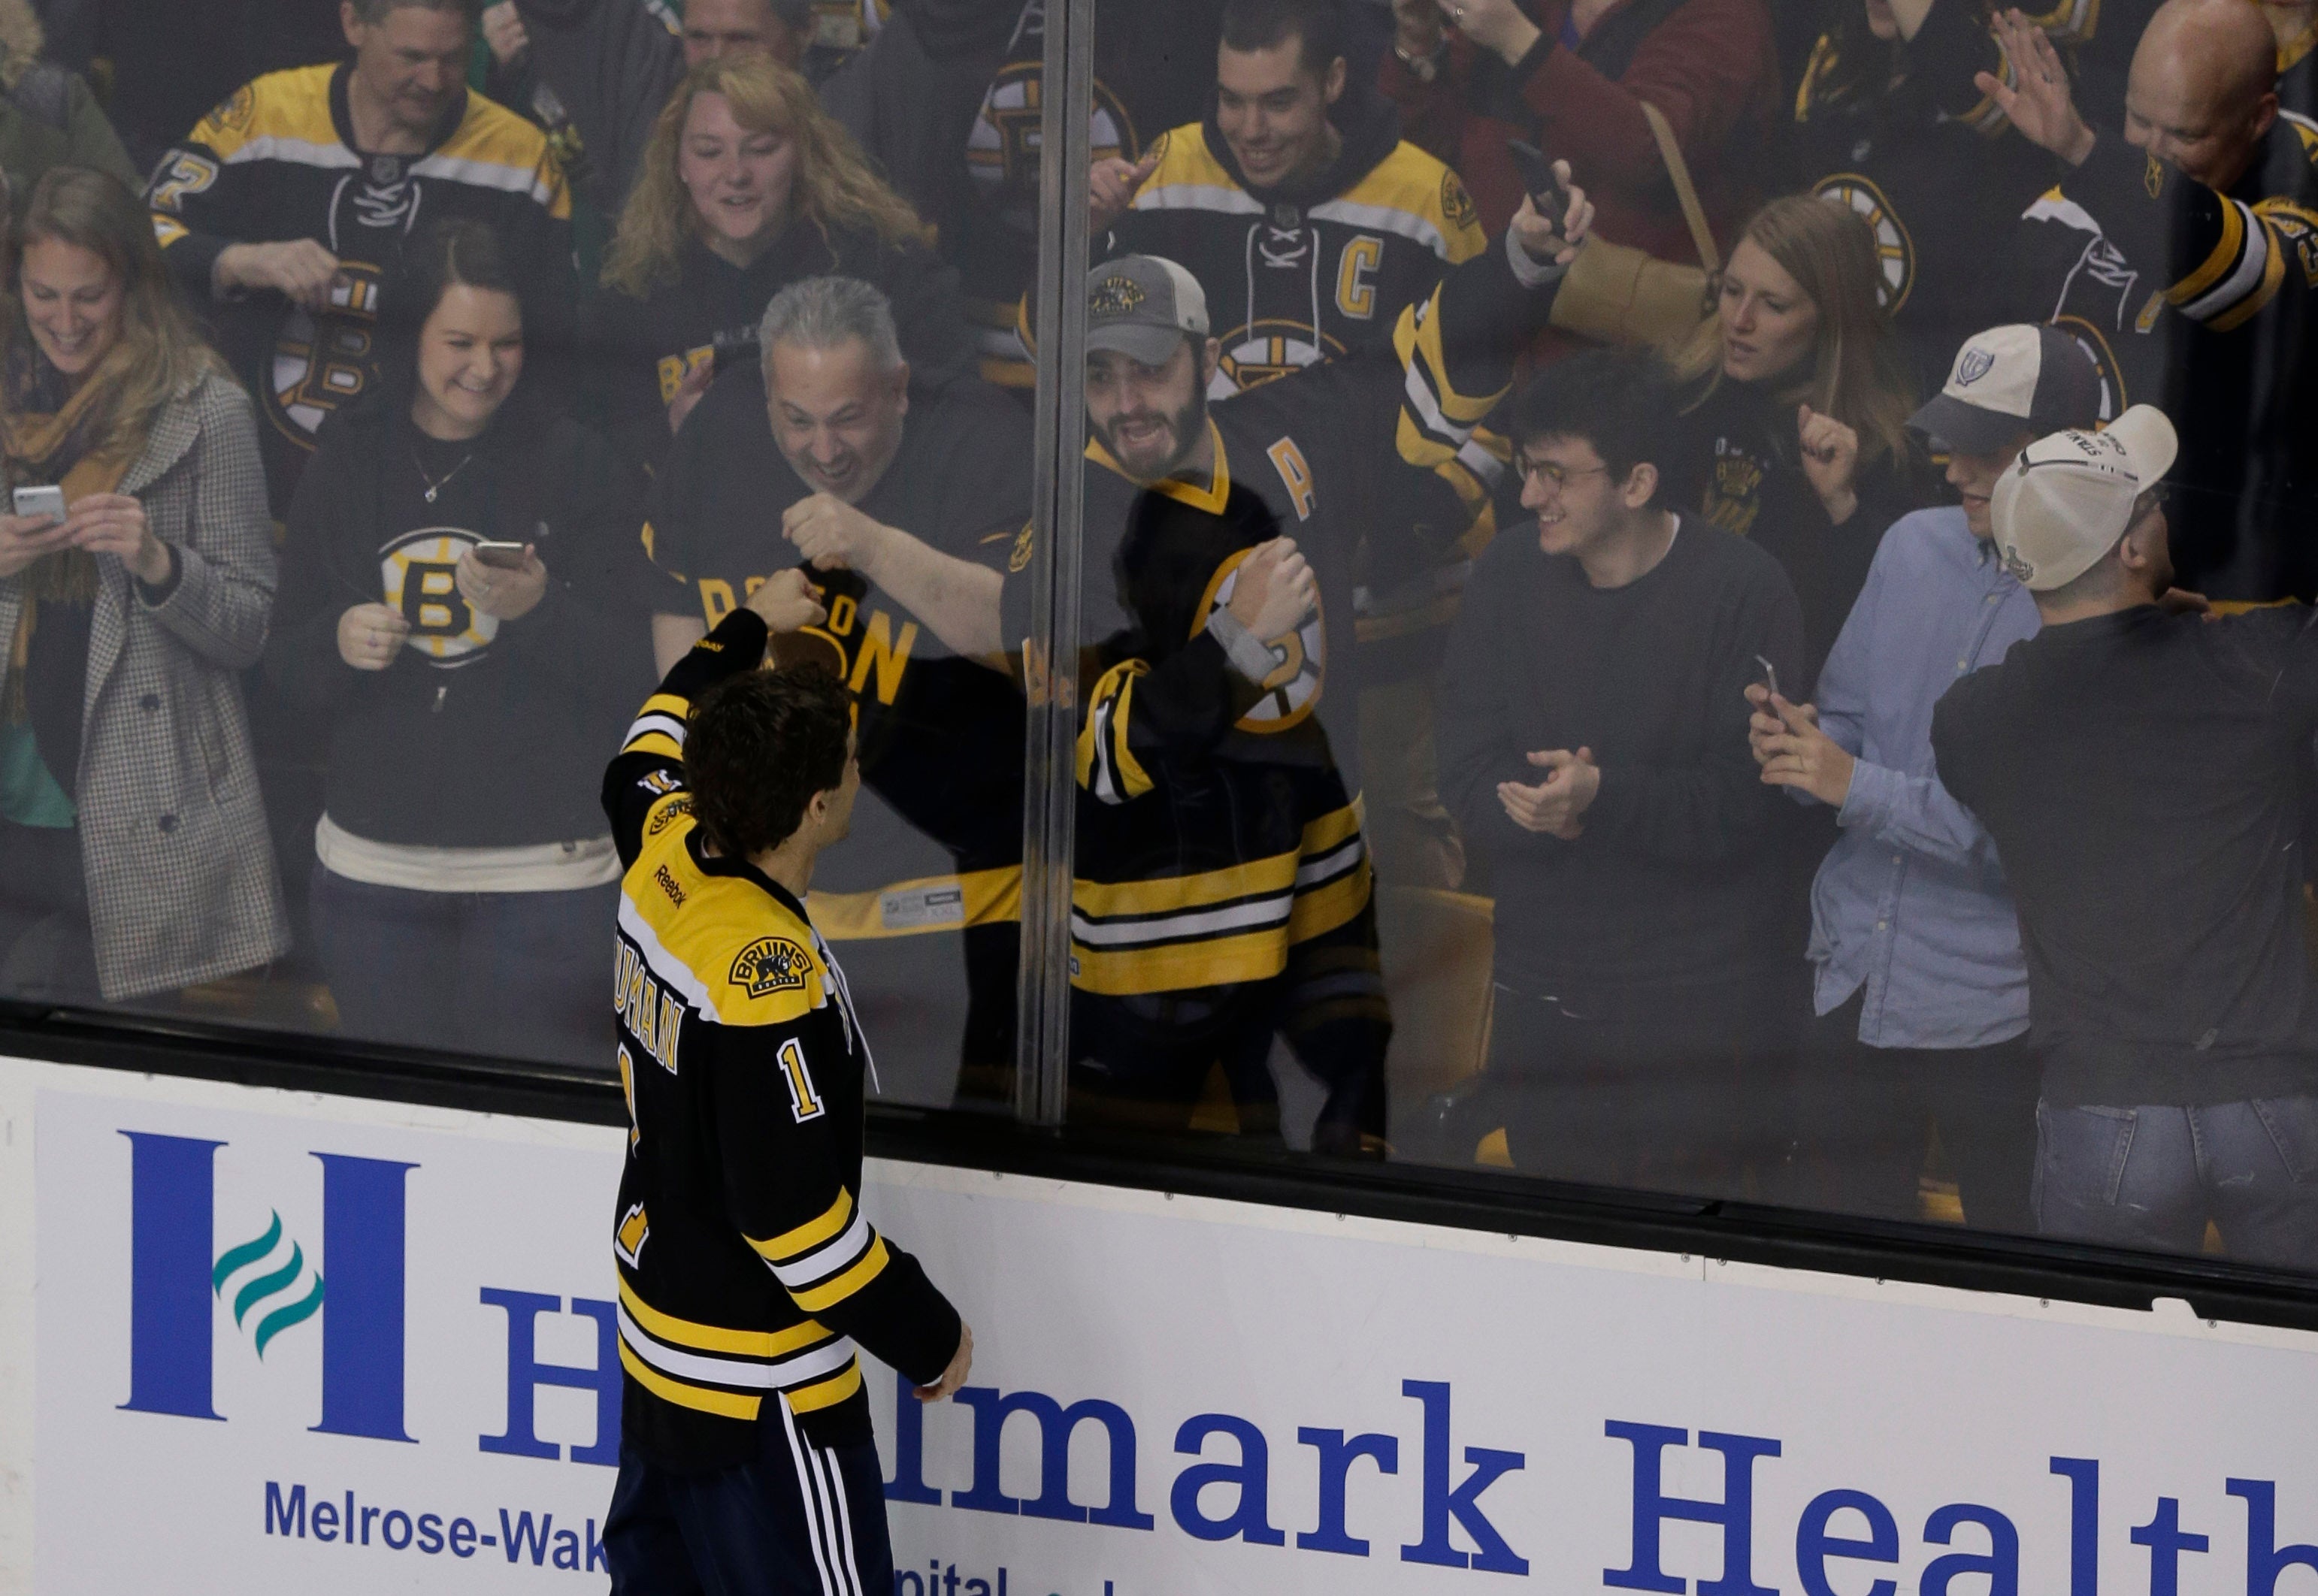 Actor Jake Gyllenhaal, portraying Boston Marathon bombing survivor Jeff Bauman, thanks the crowd of Boston Bruins fans after filming a scene from a feature film about the bombing on the ice of Boston Garden, Tuesday, April 5, 2016. (AP Photo/Charles Krupa)